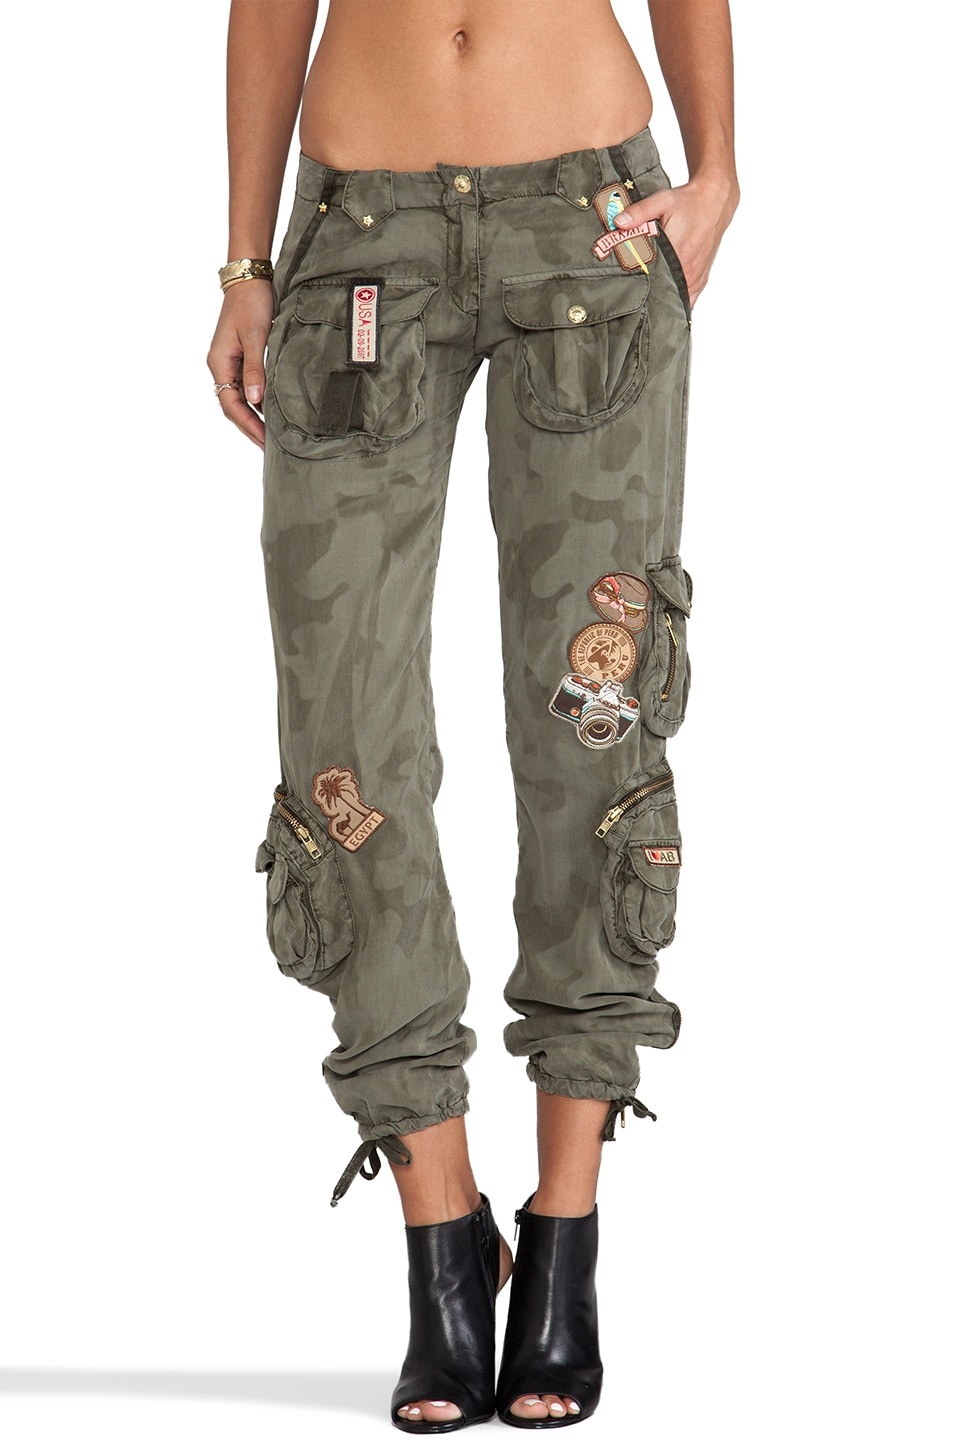 Agua Bendita Time to Travel Aviador Pants in Camo